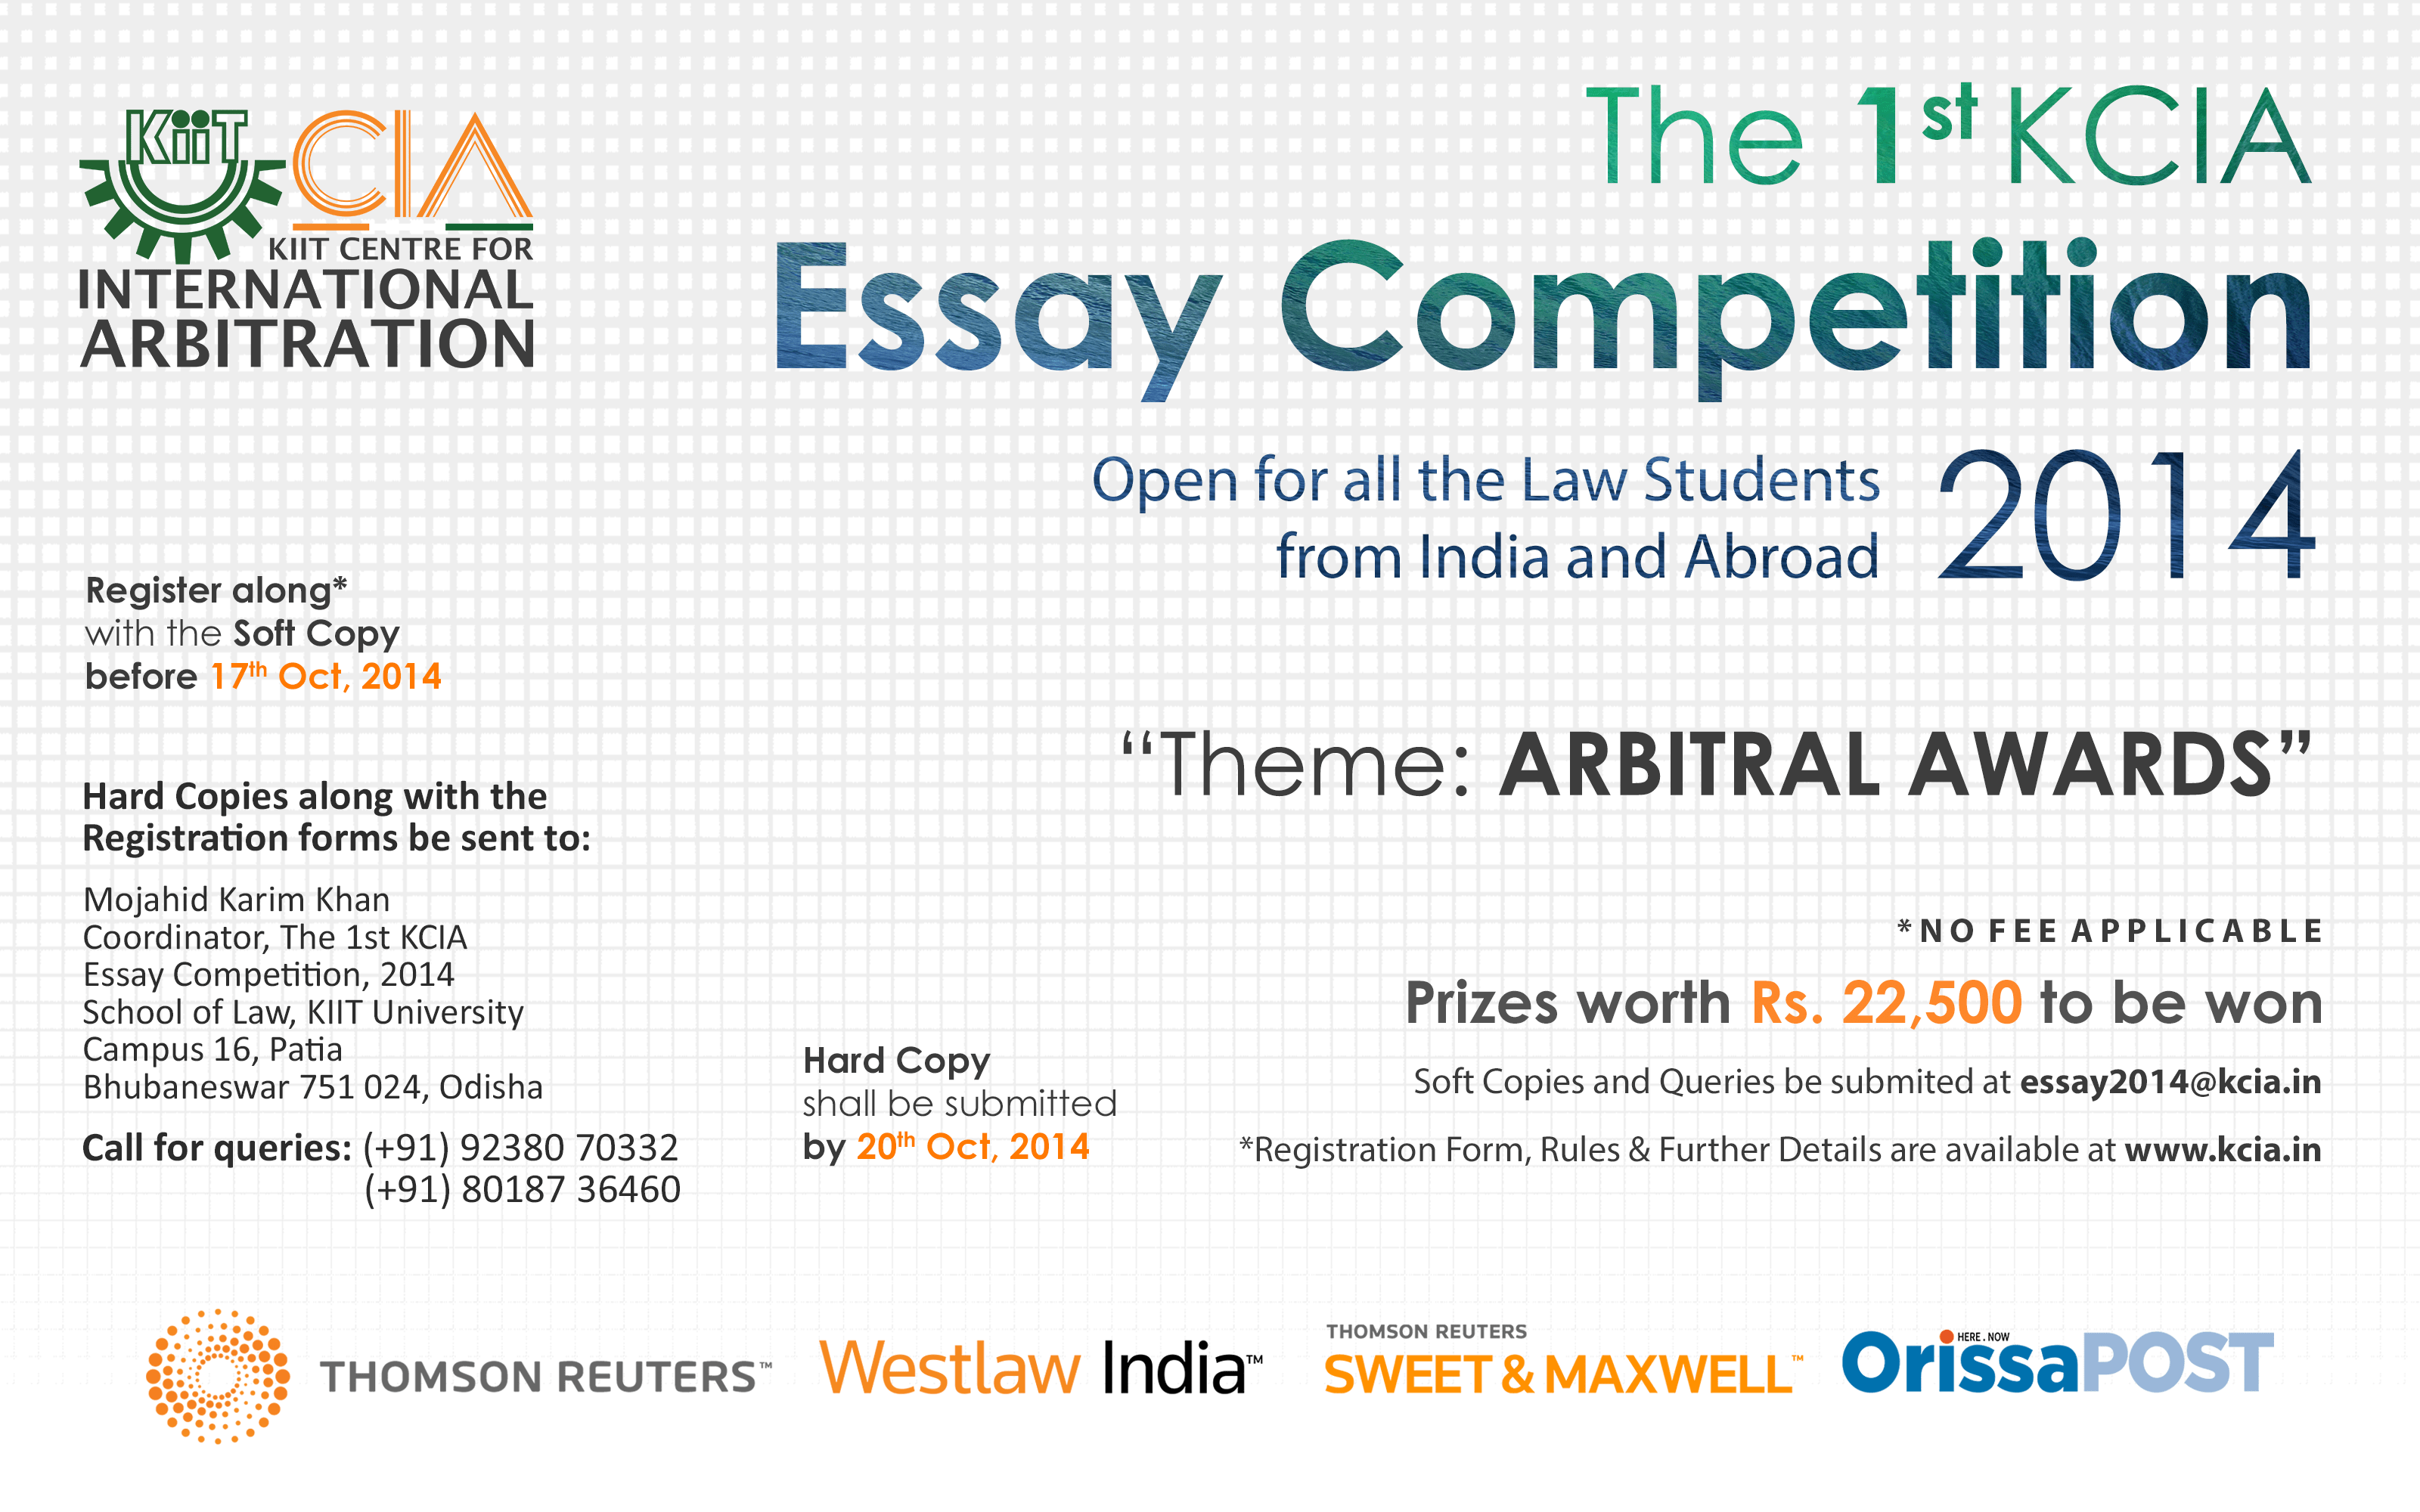 kcia essay competition